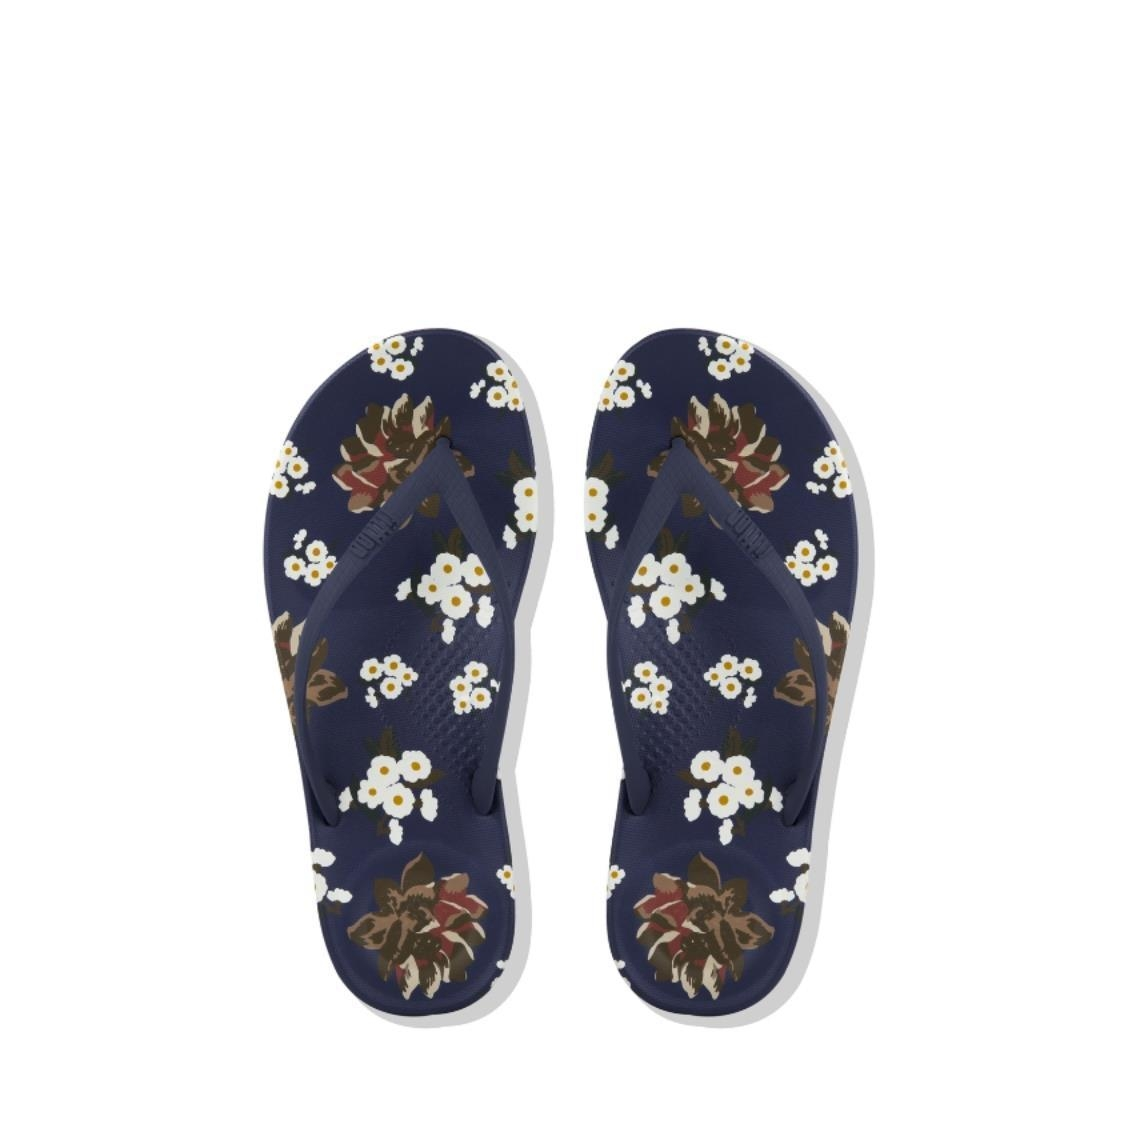 iQushion Dark Floral Ergonomic Flip-Flops Royal Blue